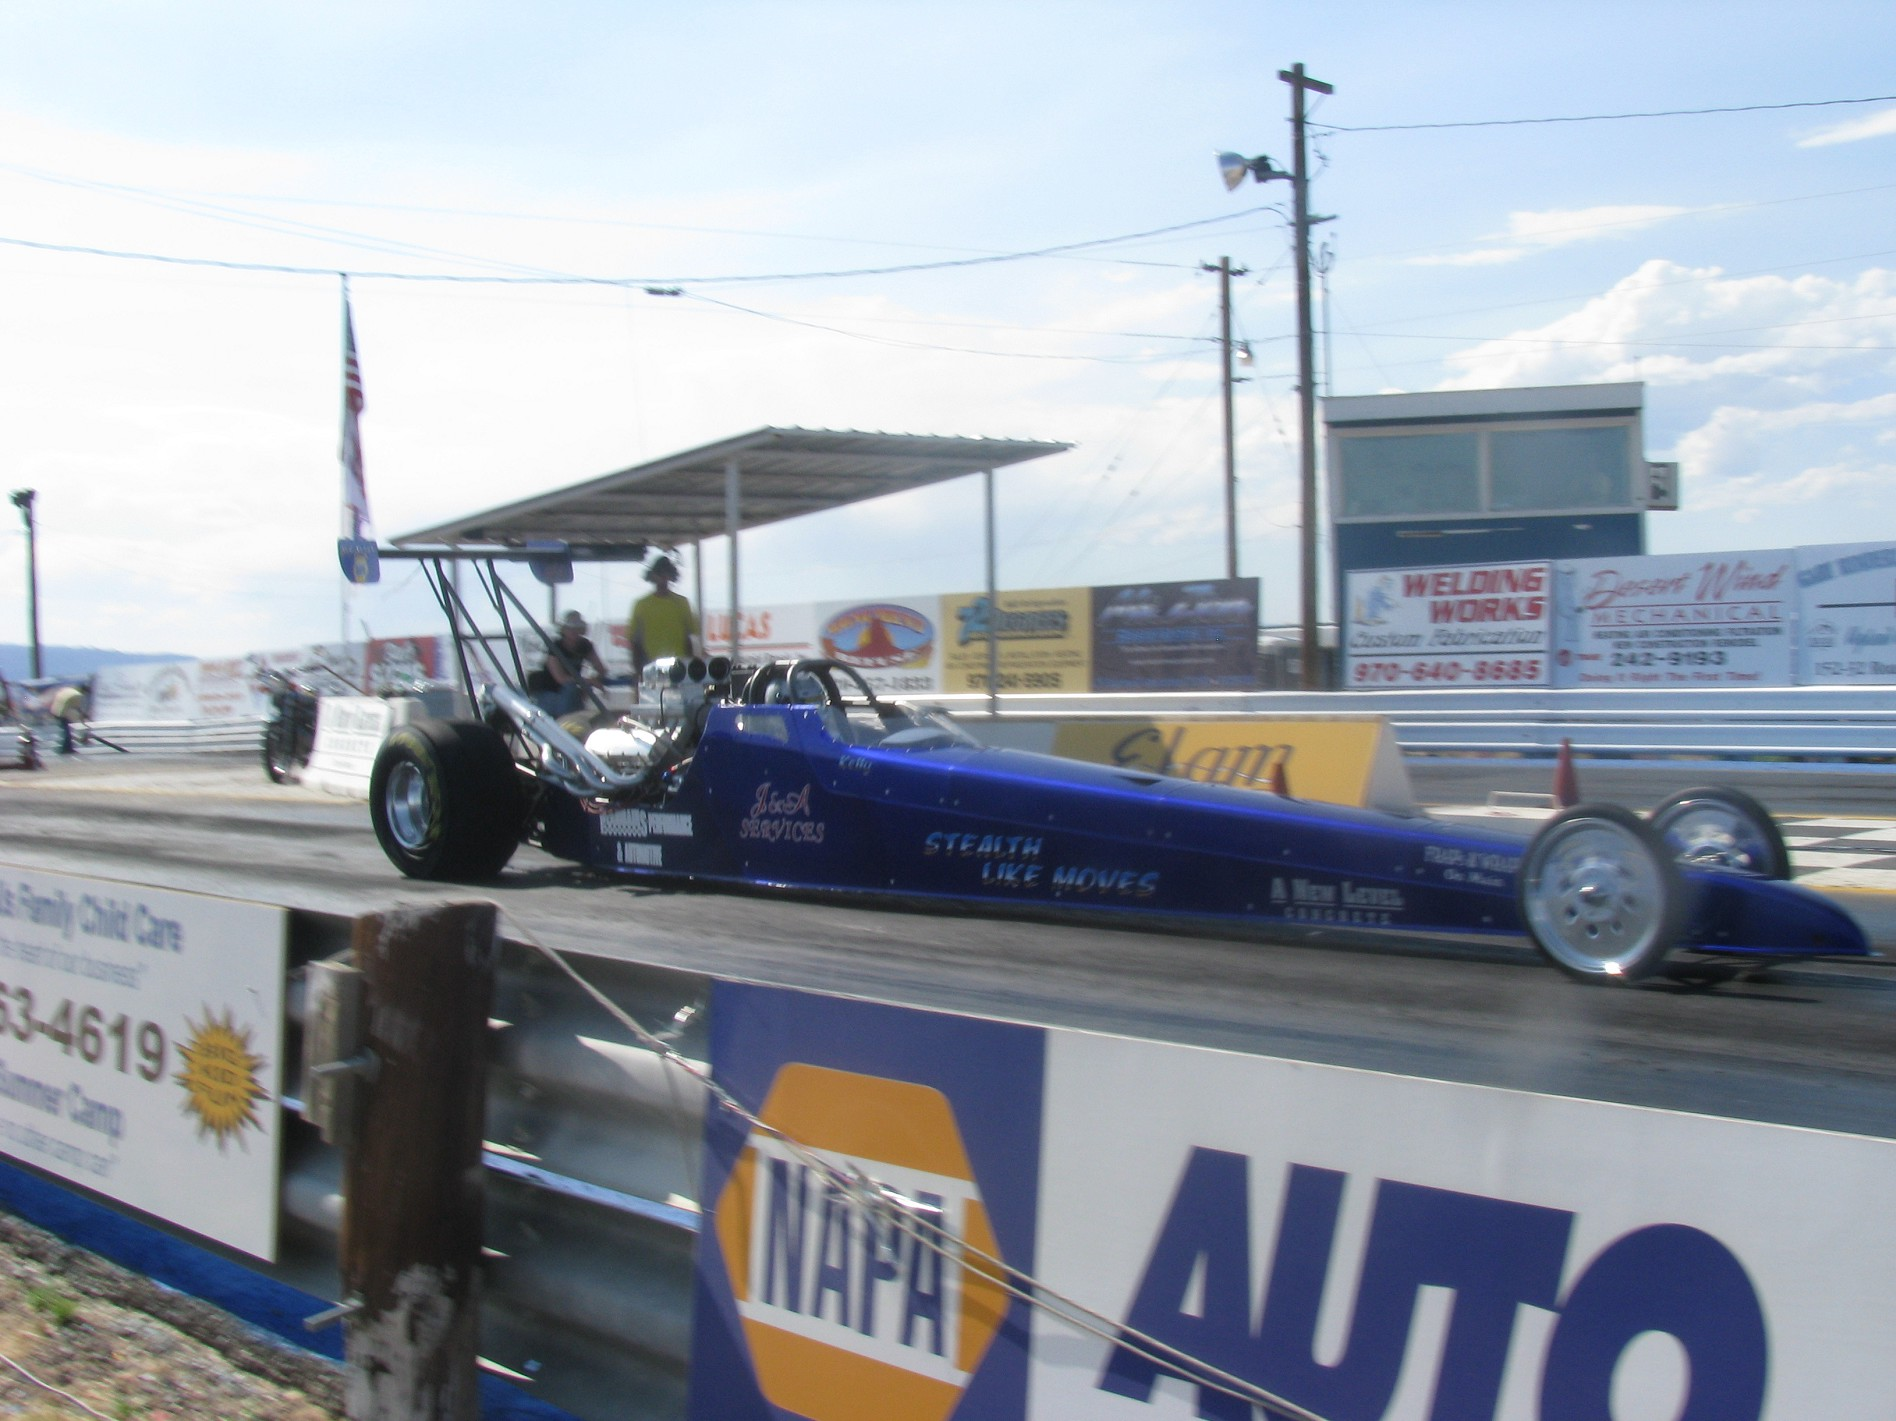 2003 Dragster Rear Engine Triple slip